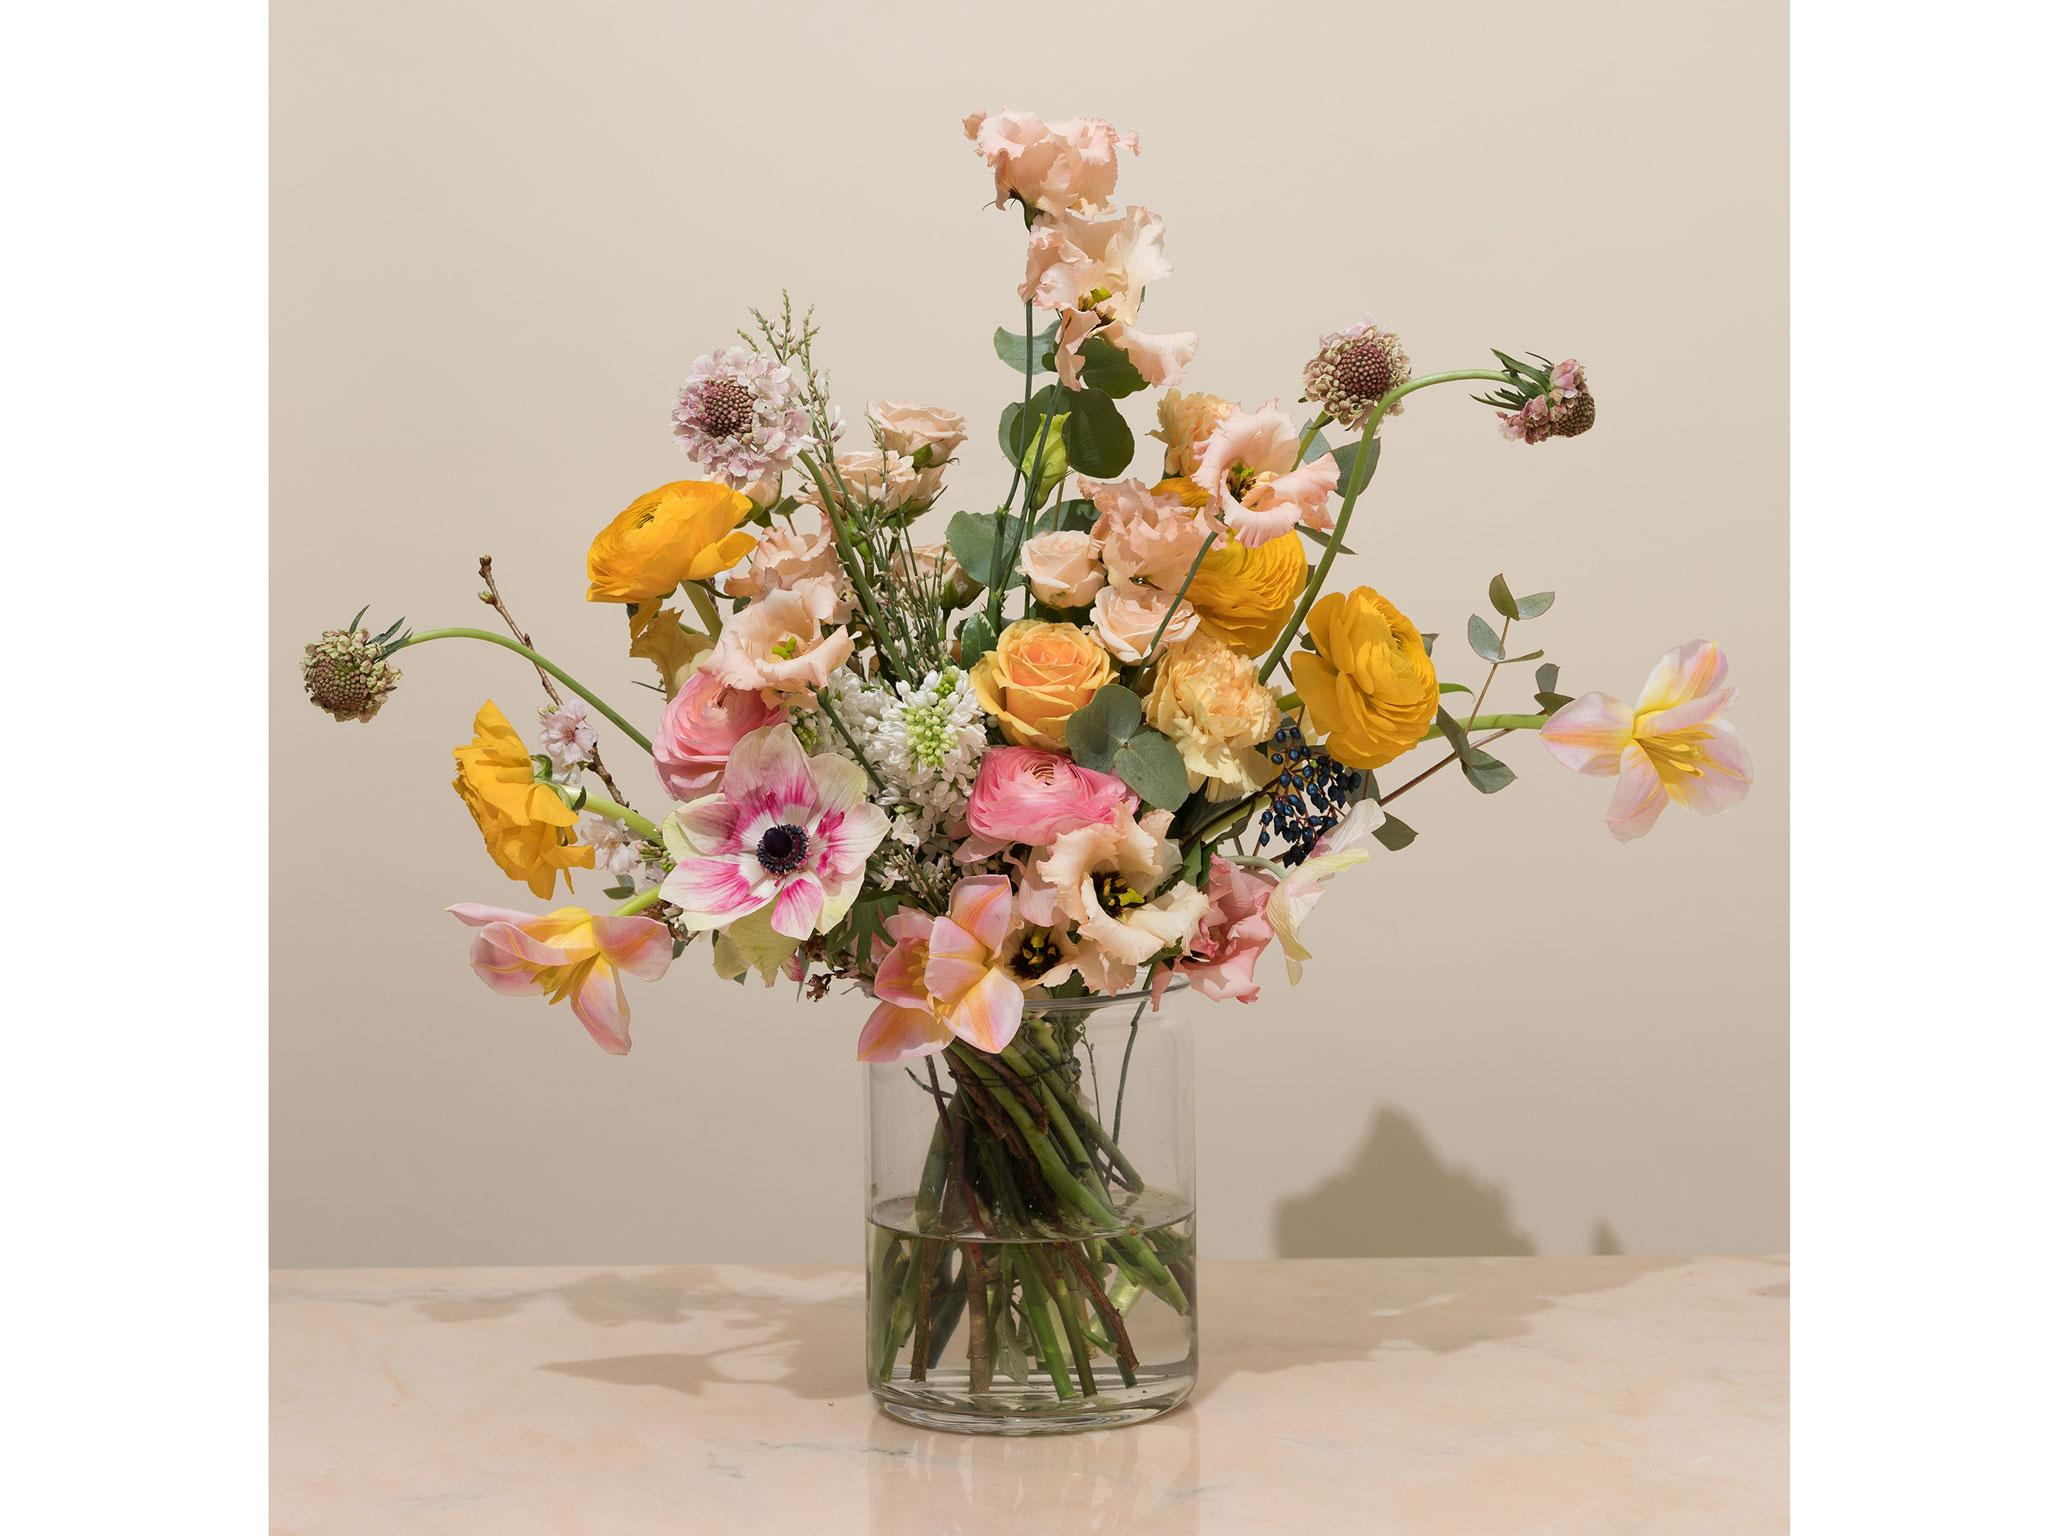 15 Best Mothers Day Flowers The Independent Vintage Story Flower Japanese Chrysantemum 2 Buying